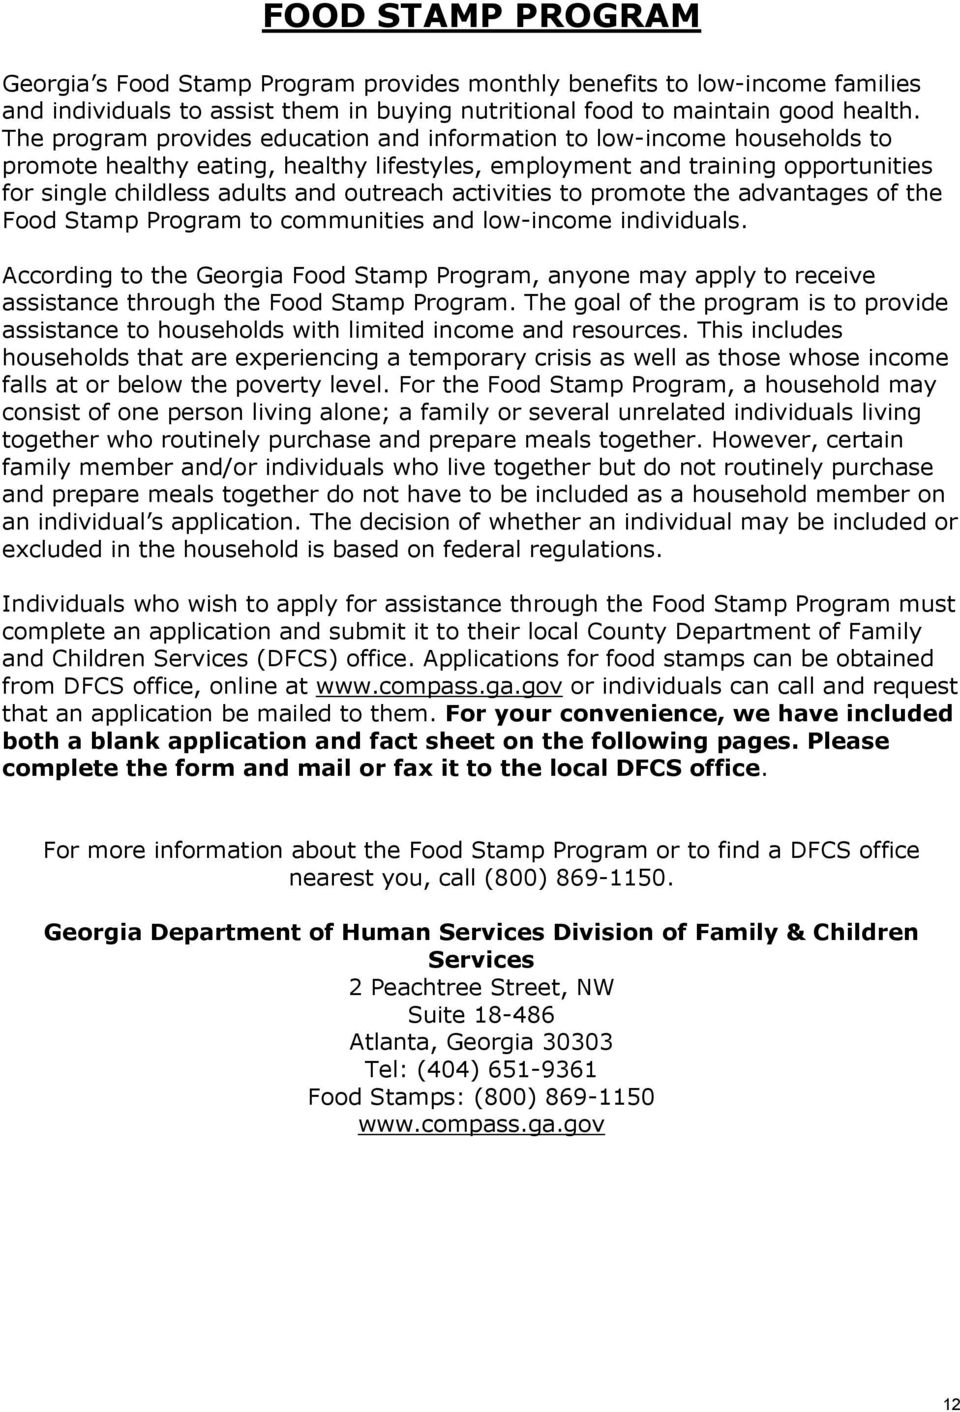 activities to promote the advantages of the Food Stamp Program to communities and low-income individuals.